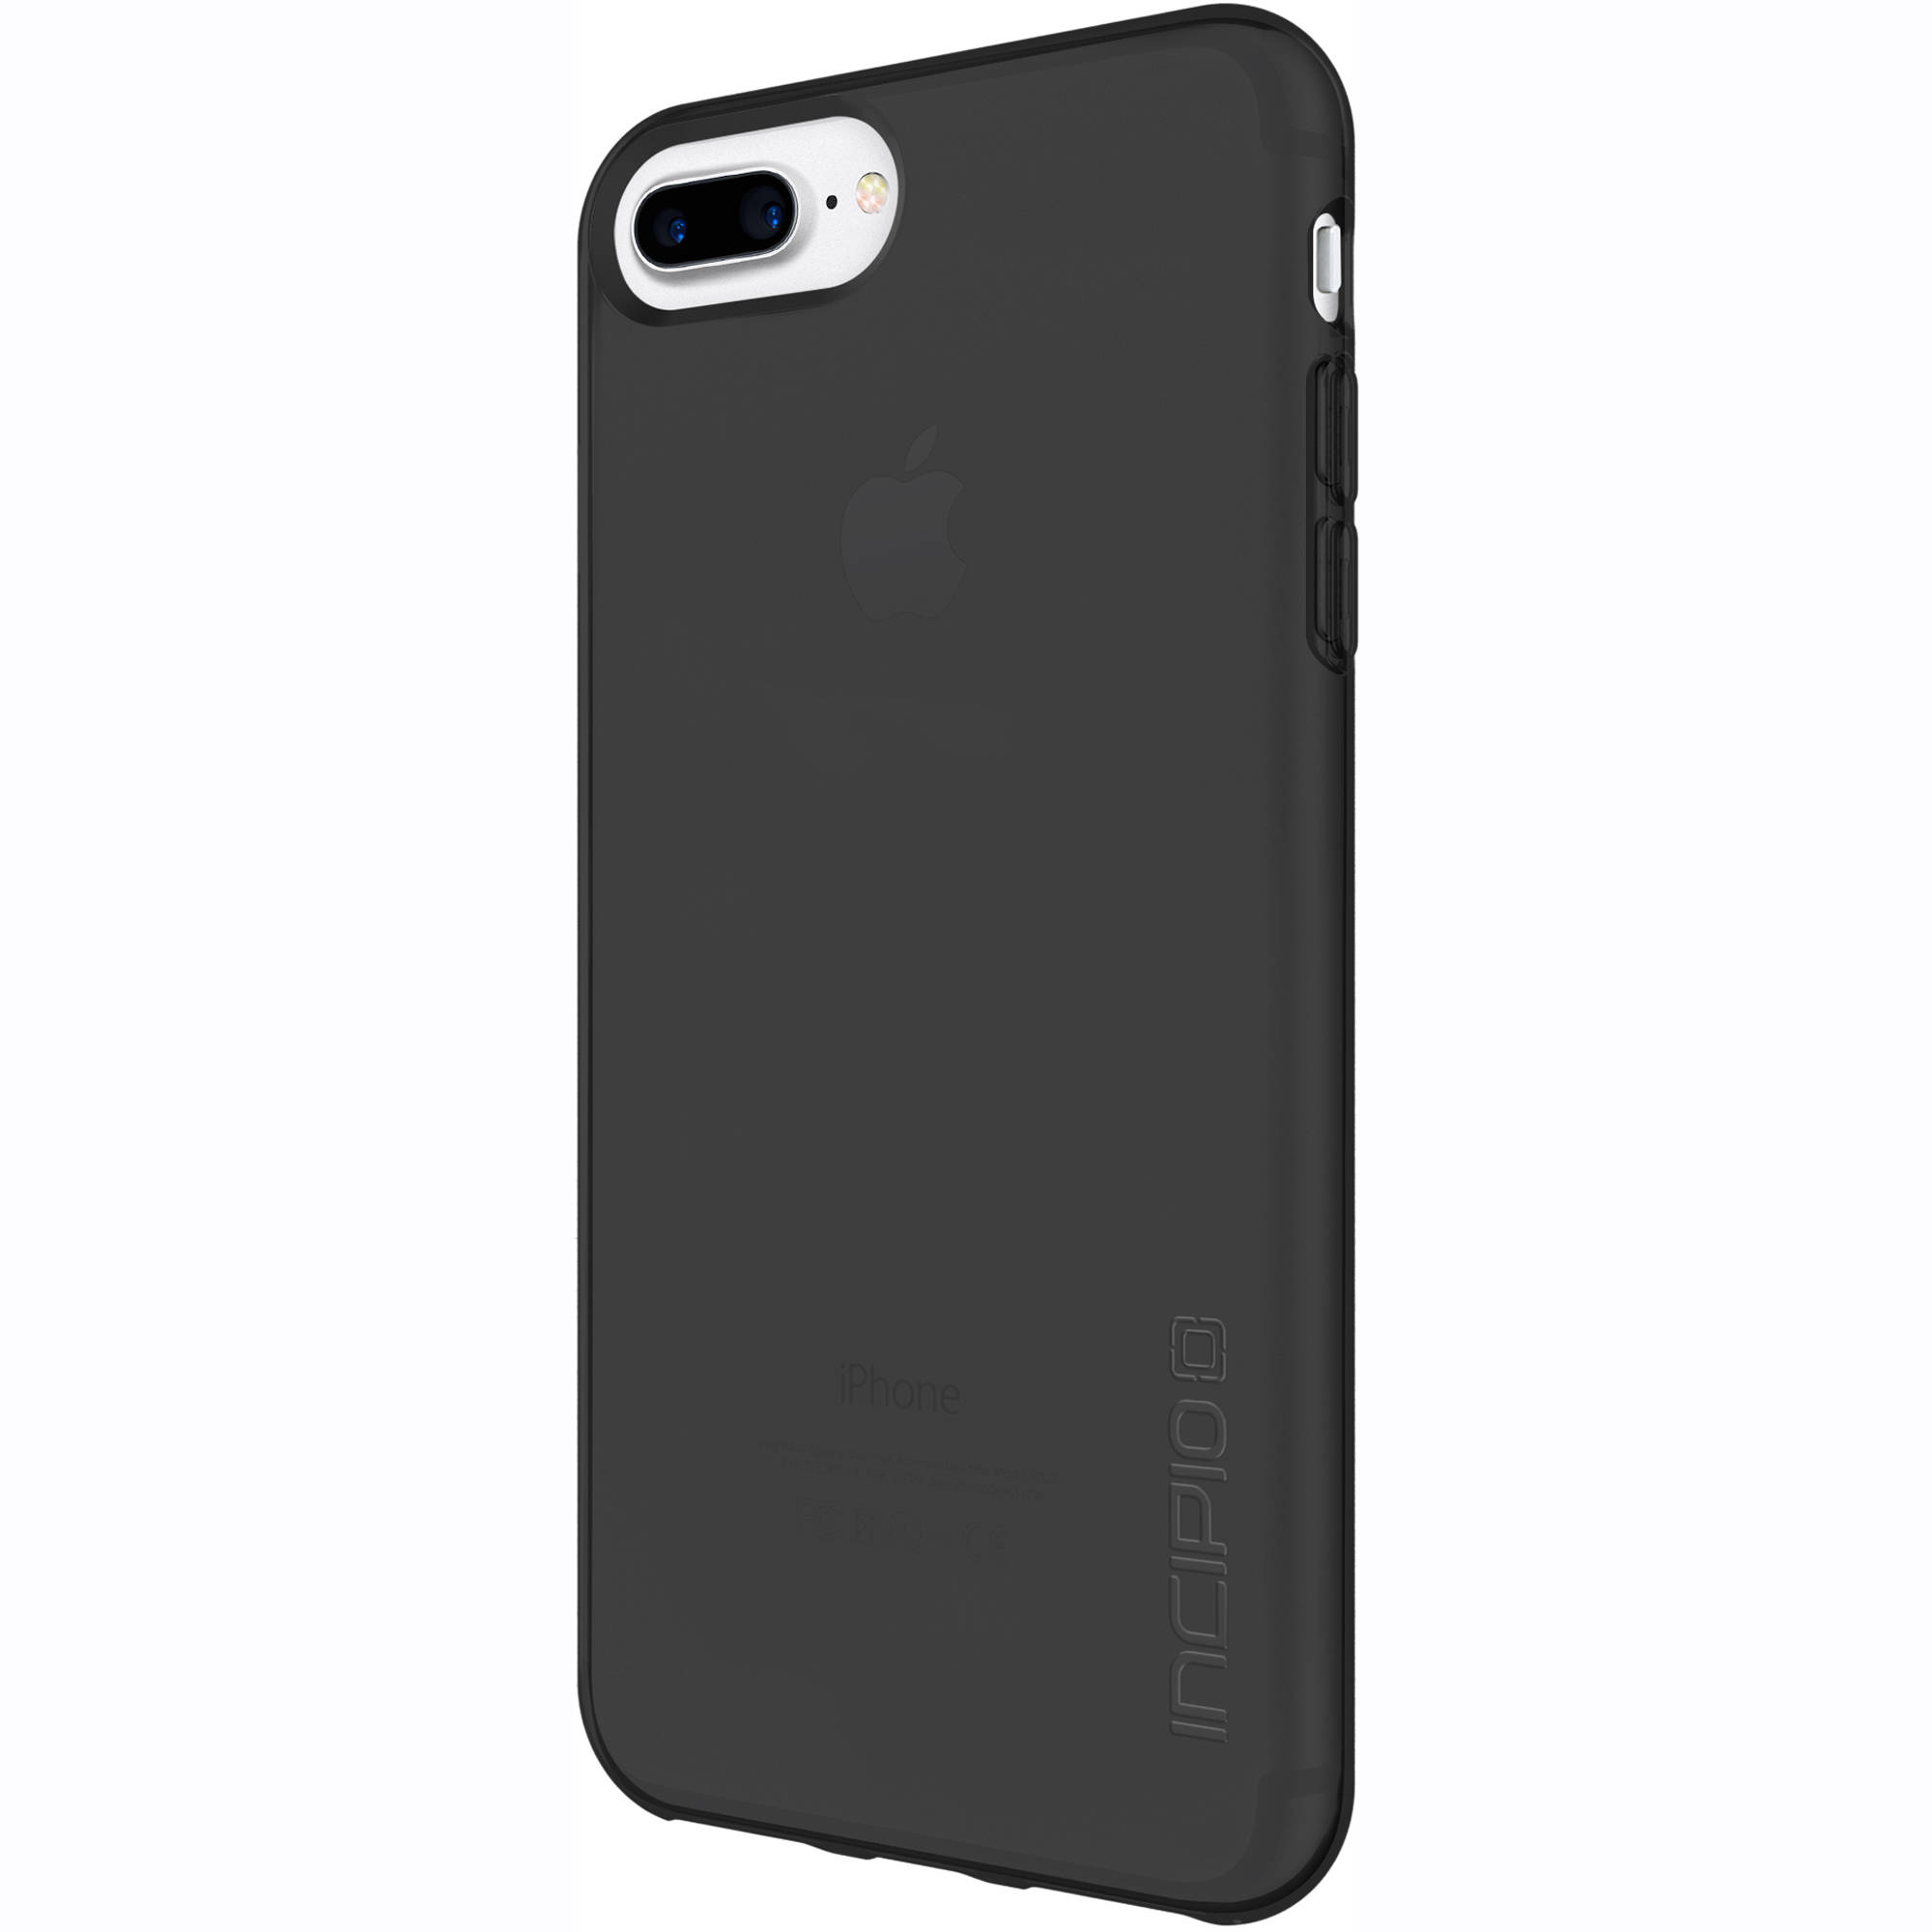 9eabcd80798 Incipio NGP Pure Case for iPhone 6 Plus/6s Plus/7 Plus (Black. This image  is for illustrative purposes only